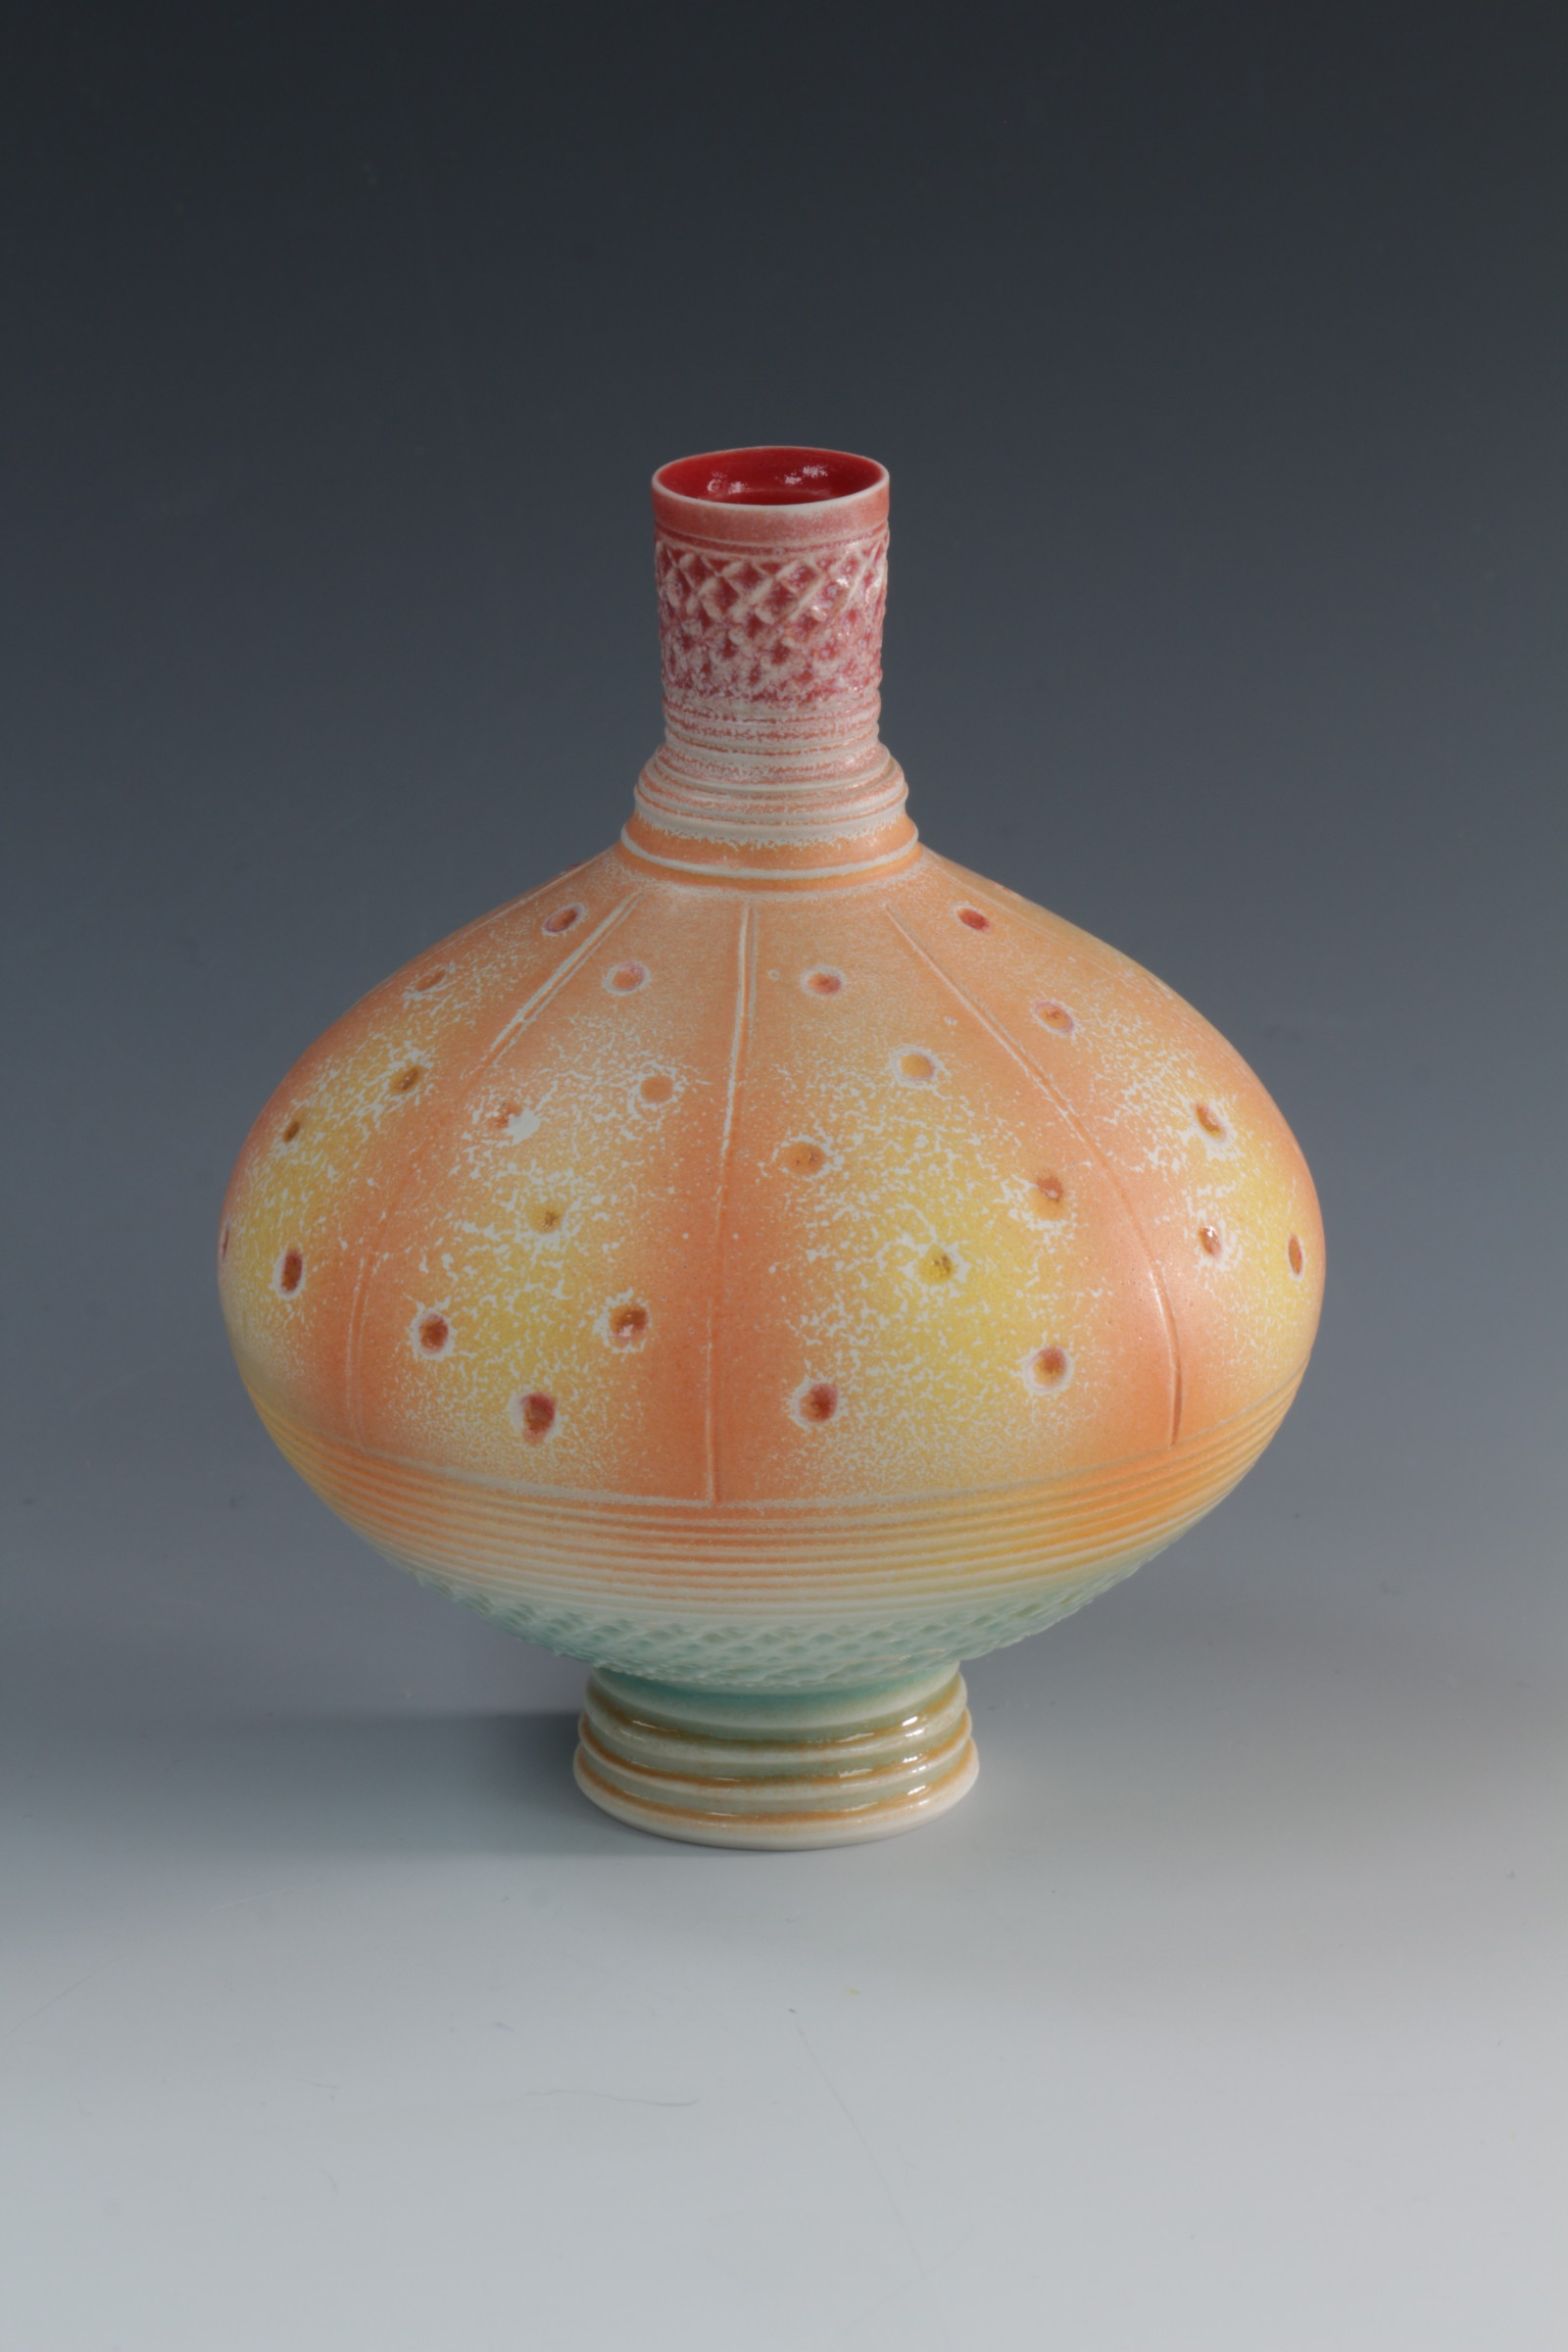 "<span class=""link fancybox-details-link""><a href=""/artists/61-geoffrey-swindell/works/6901-geoffrey-swindell-bud-vase-2020/"">View Detail Page</a></span><div class=""artist""><strong>Geoffrey Swindell</strong></div> <div class=""title""><em>Bud Vase</em>, 2020</div> <div class=""medium"">Porcelain</div><div class=""price"">£170.00</div><div class=""copyright_line"">Copyright The Artist</div>"